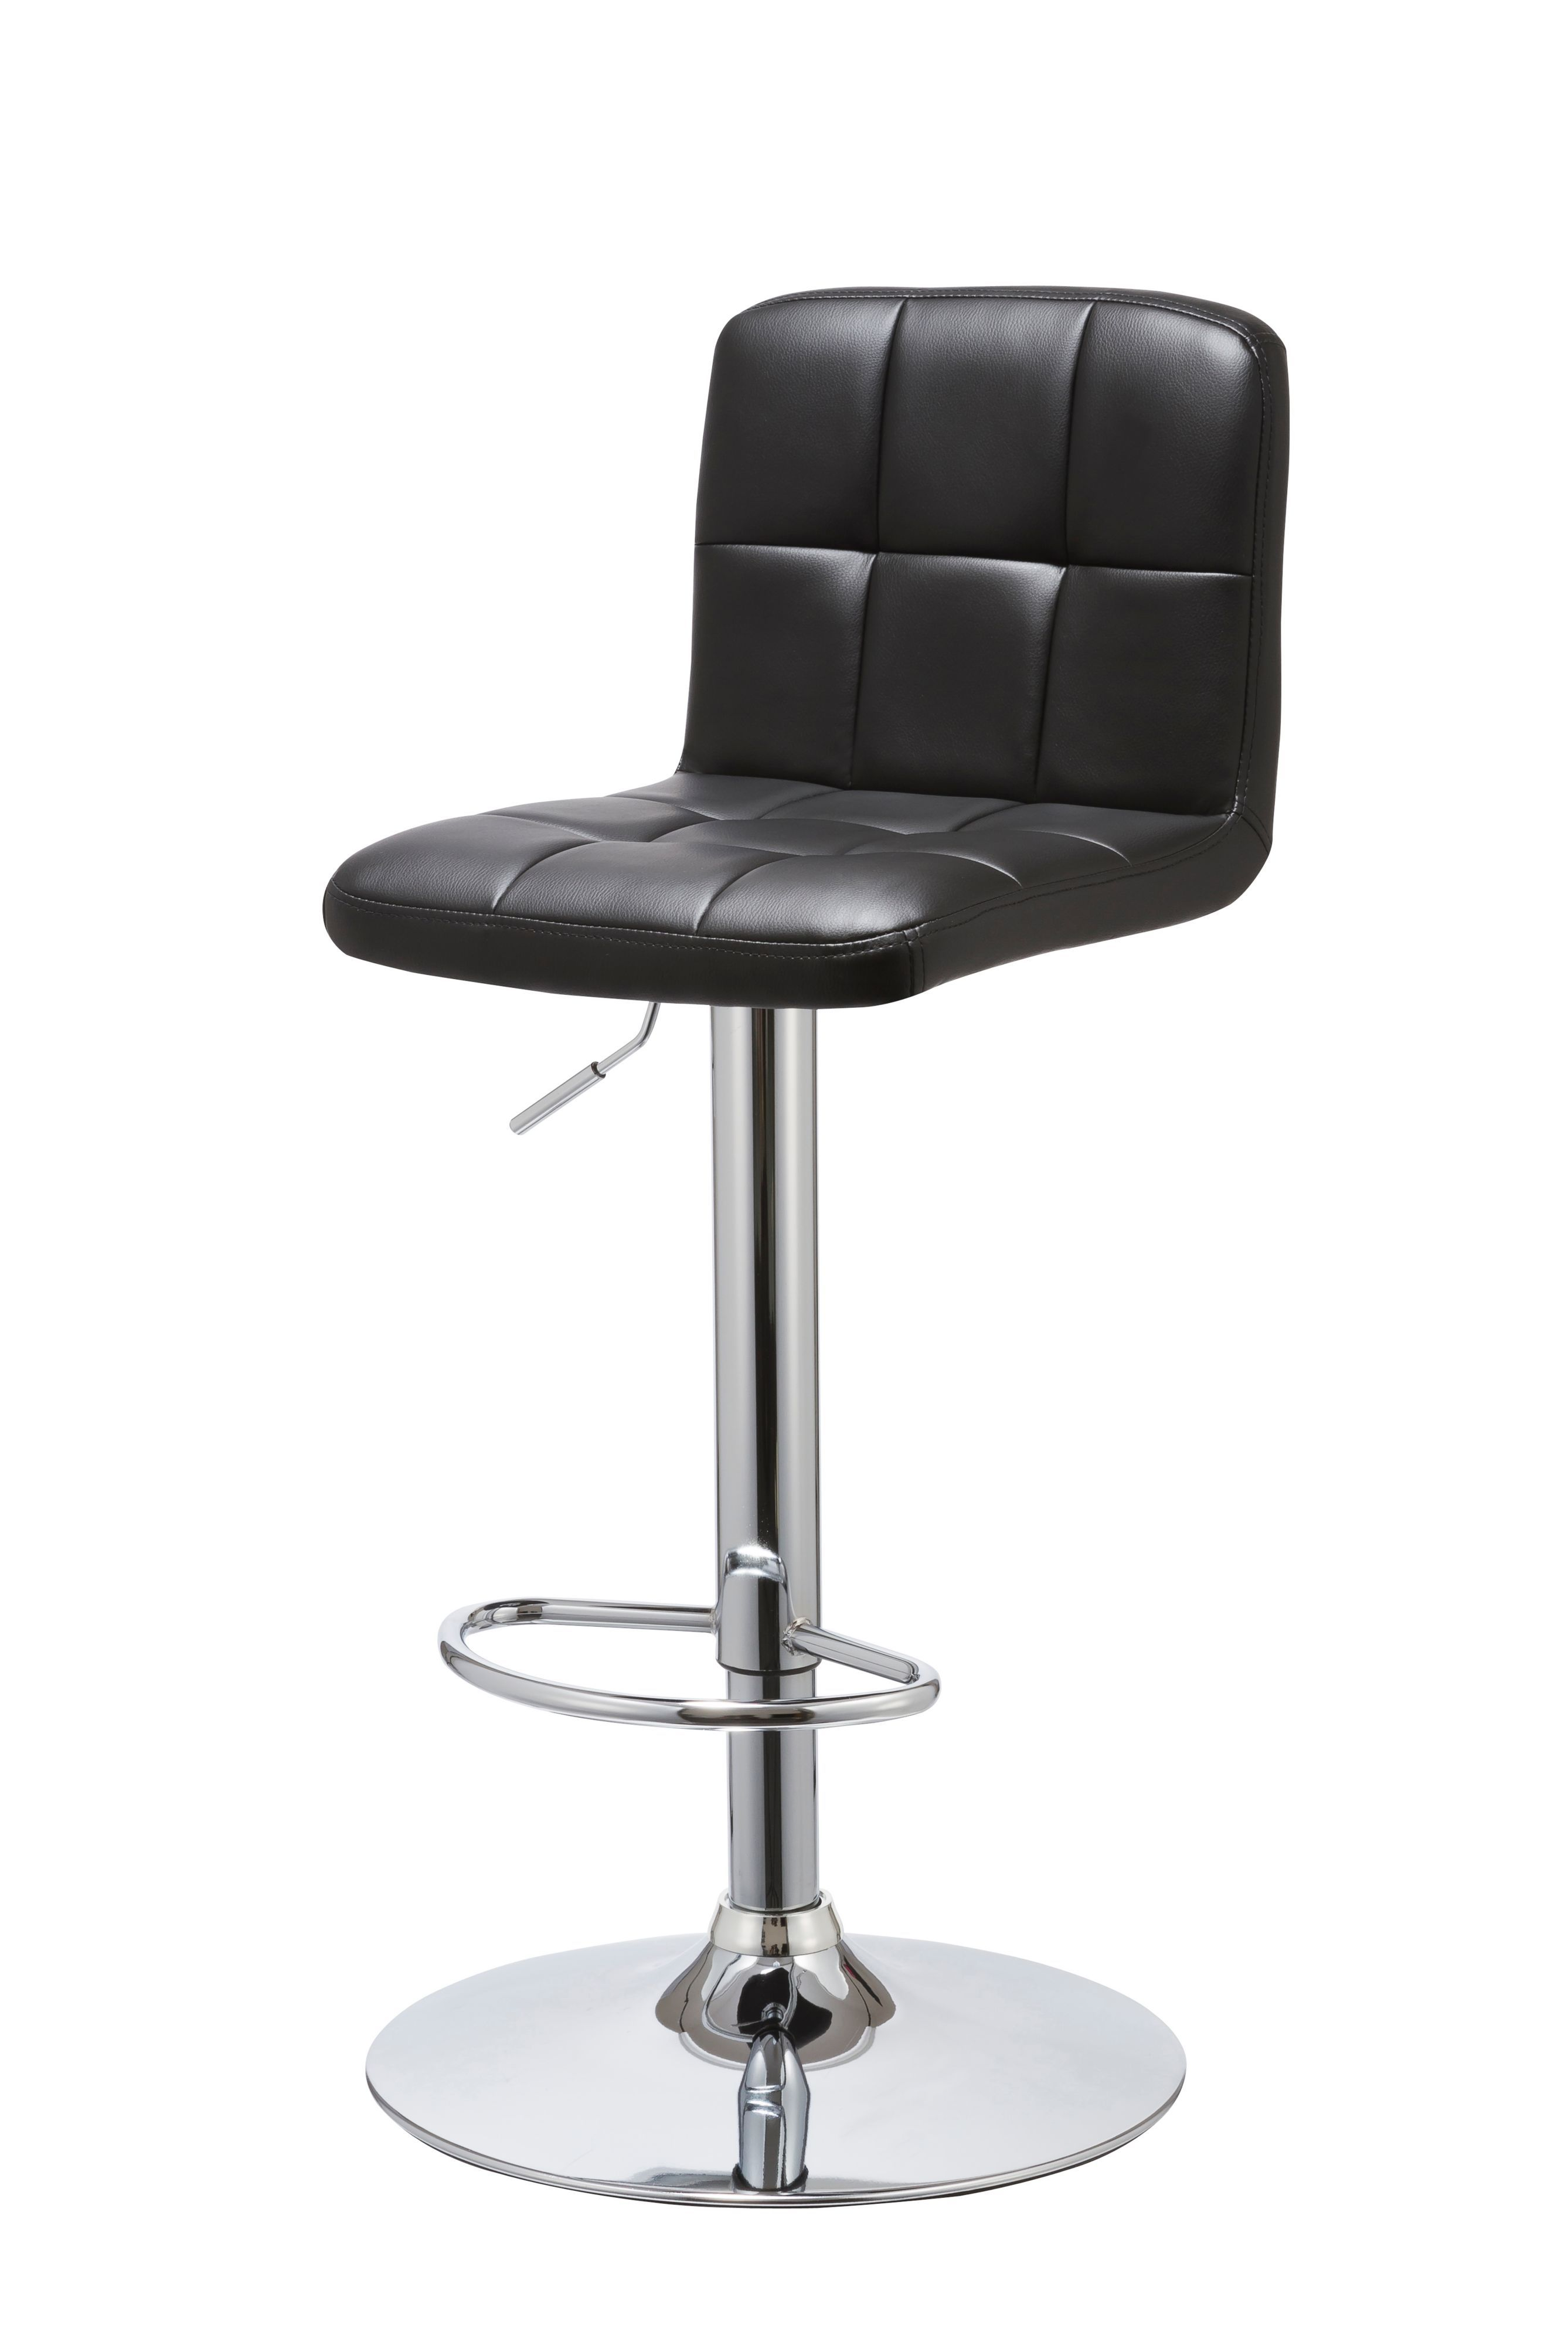 Hadleigh Chrome Effect Bar Stool H 1040mm W 450mm